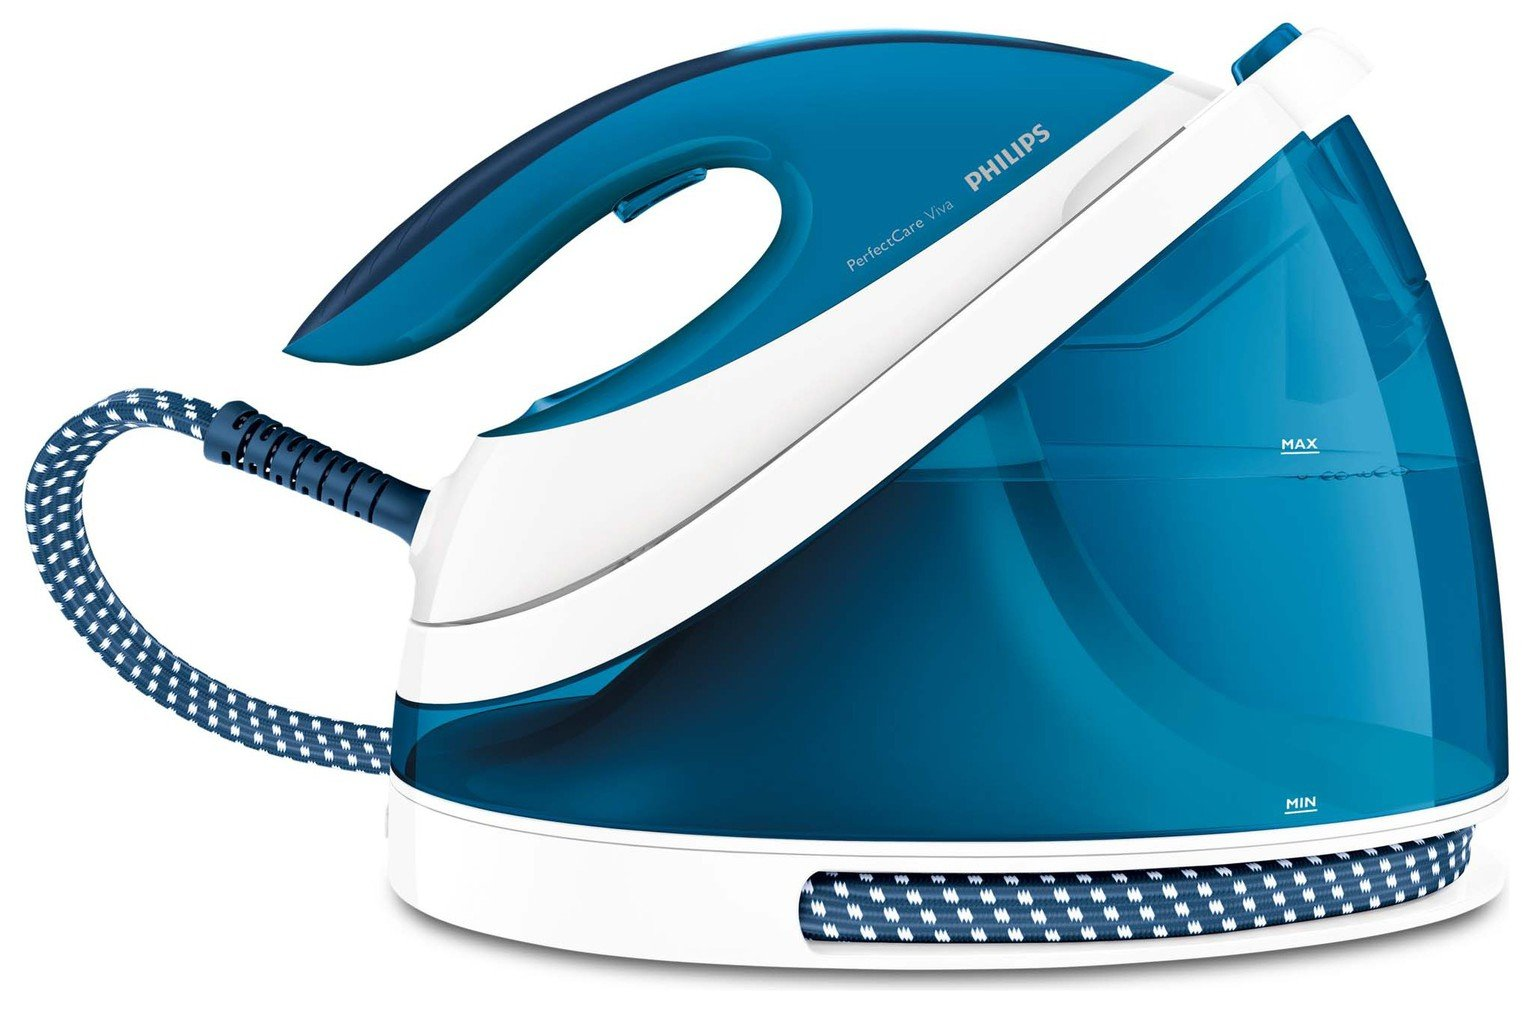 Philips PerfectCare Viva GC7053 Steam Generator Iron